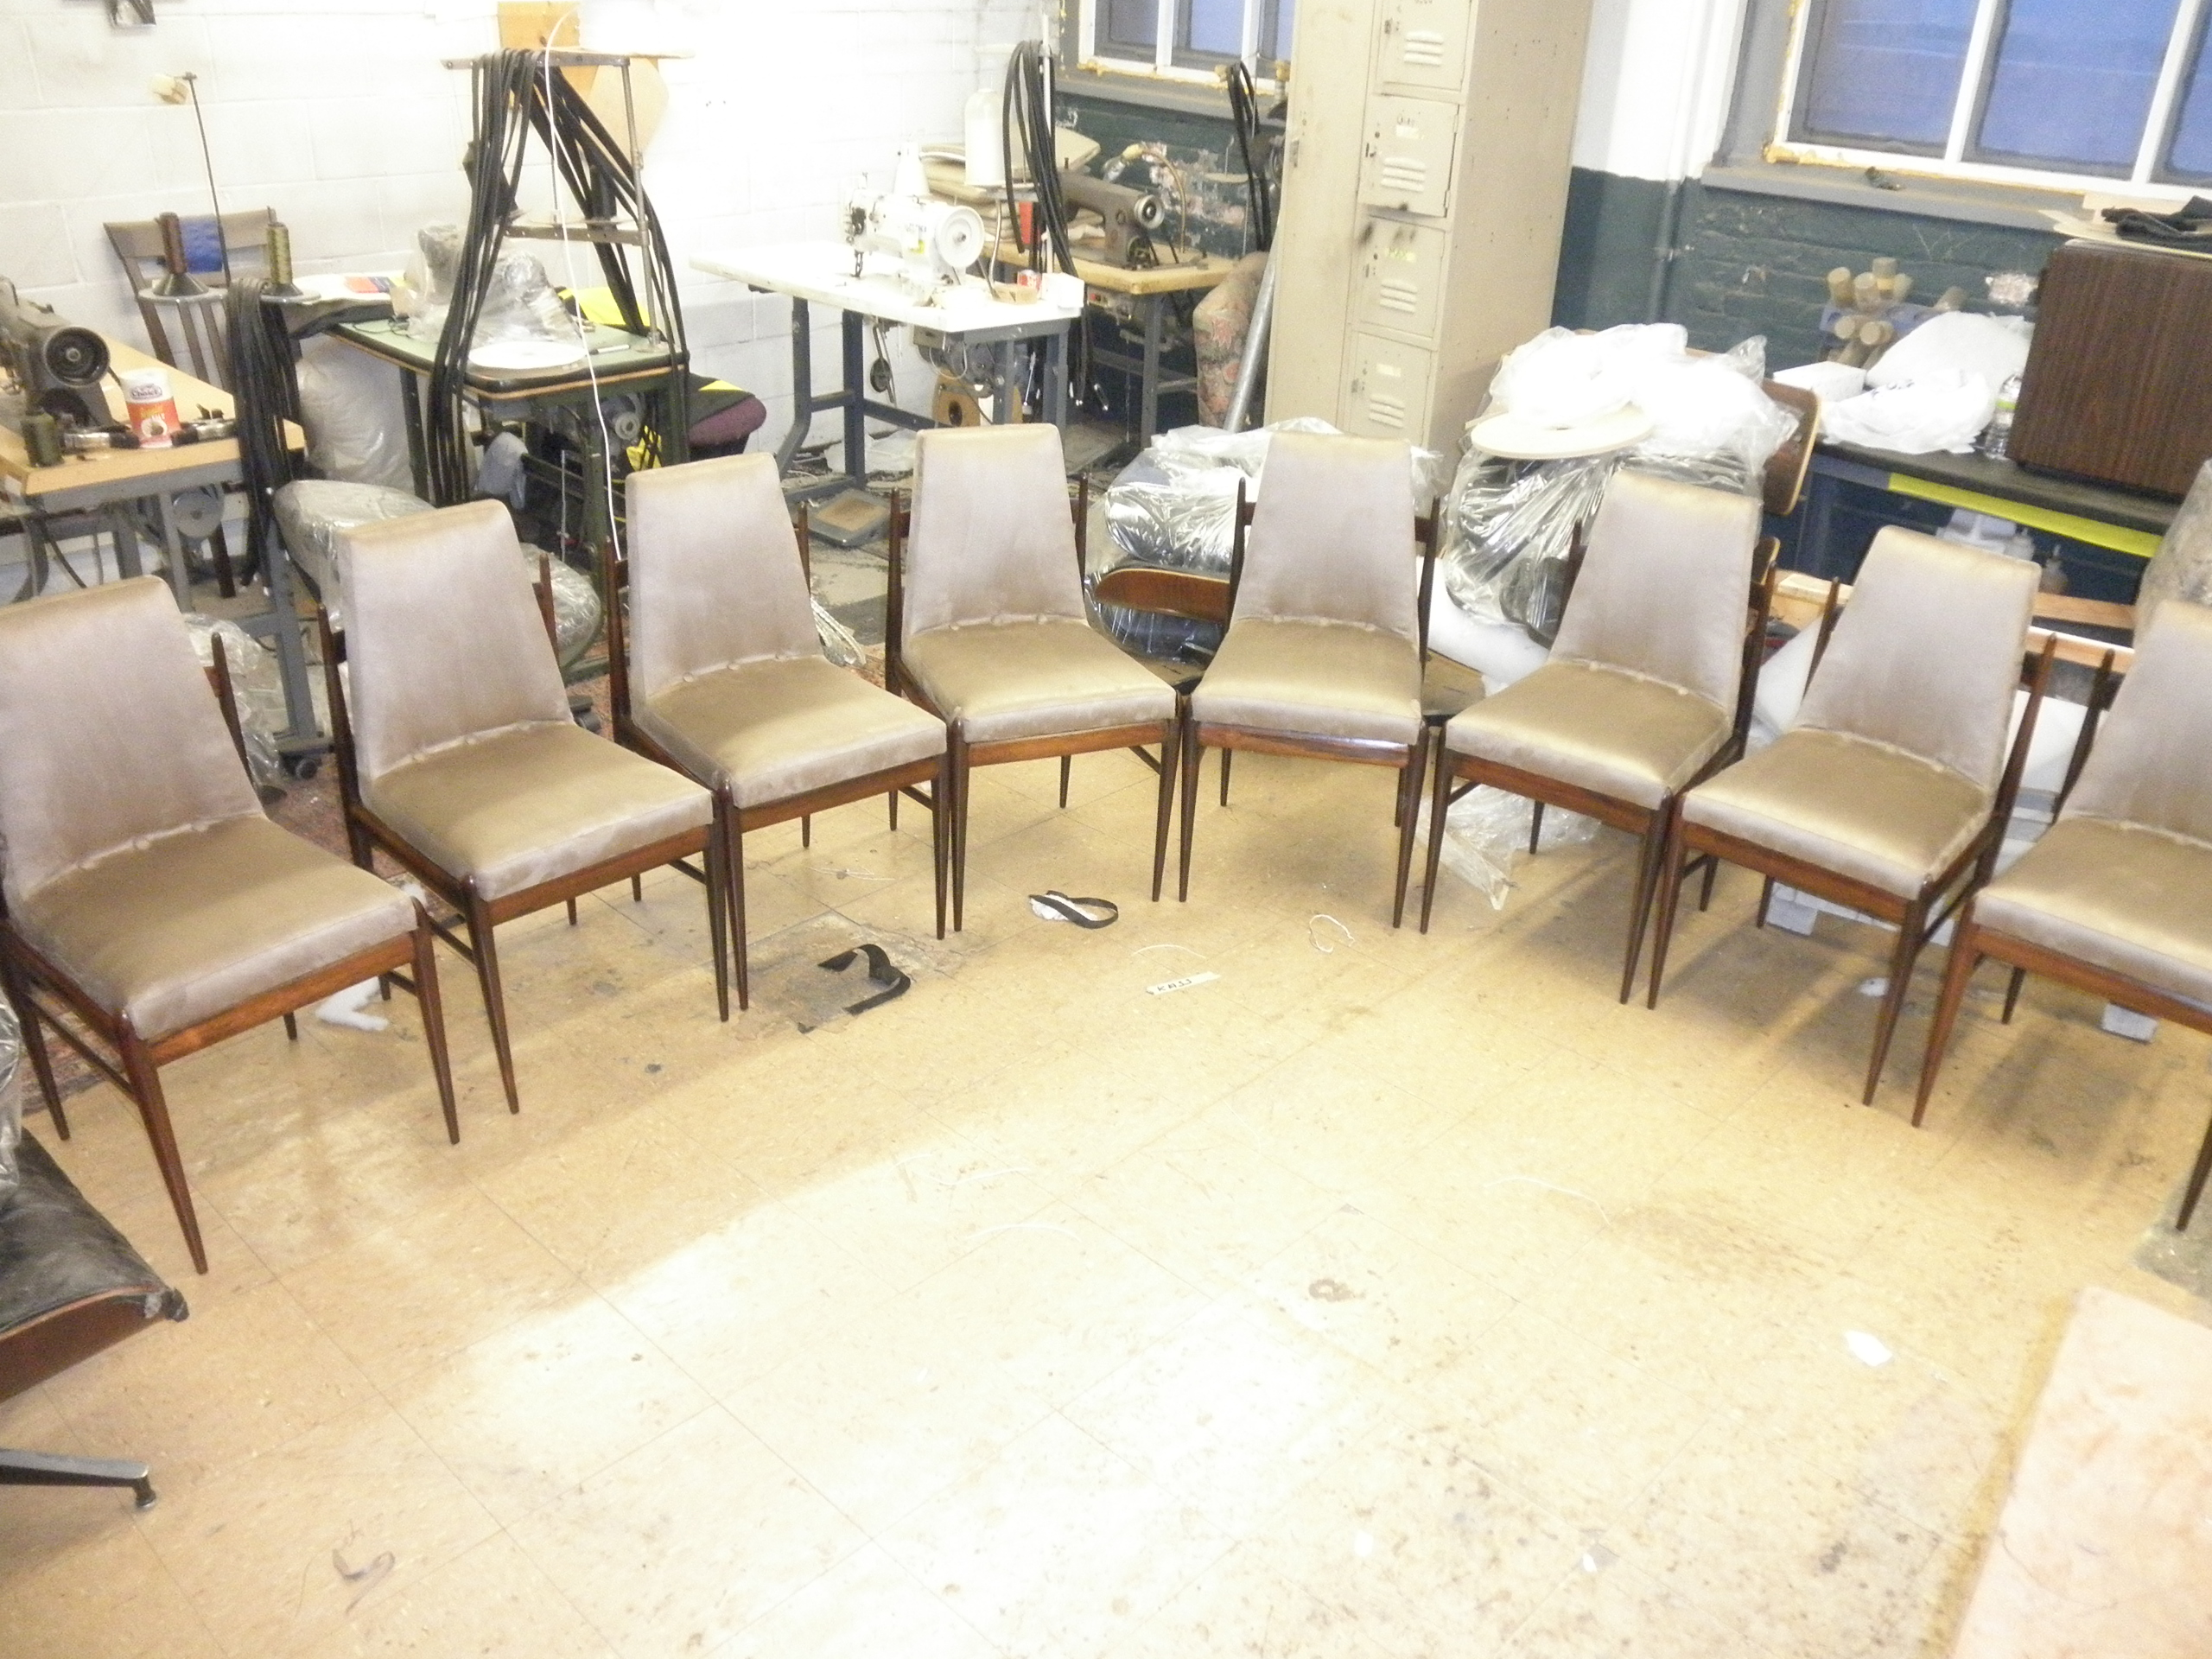 These chairs have been refinished, with the rosewood lightly sanded, selectively to match the color of the various parts.